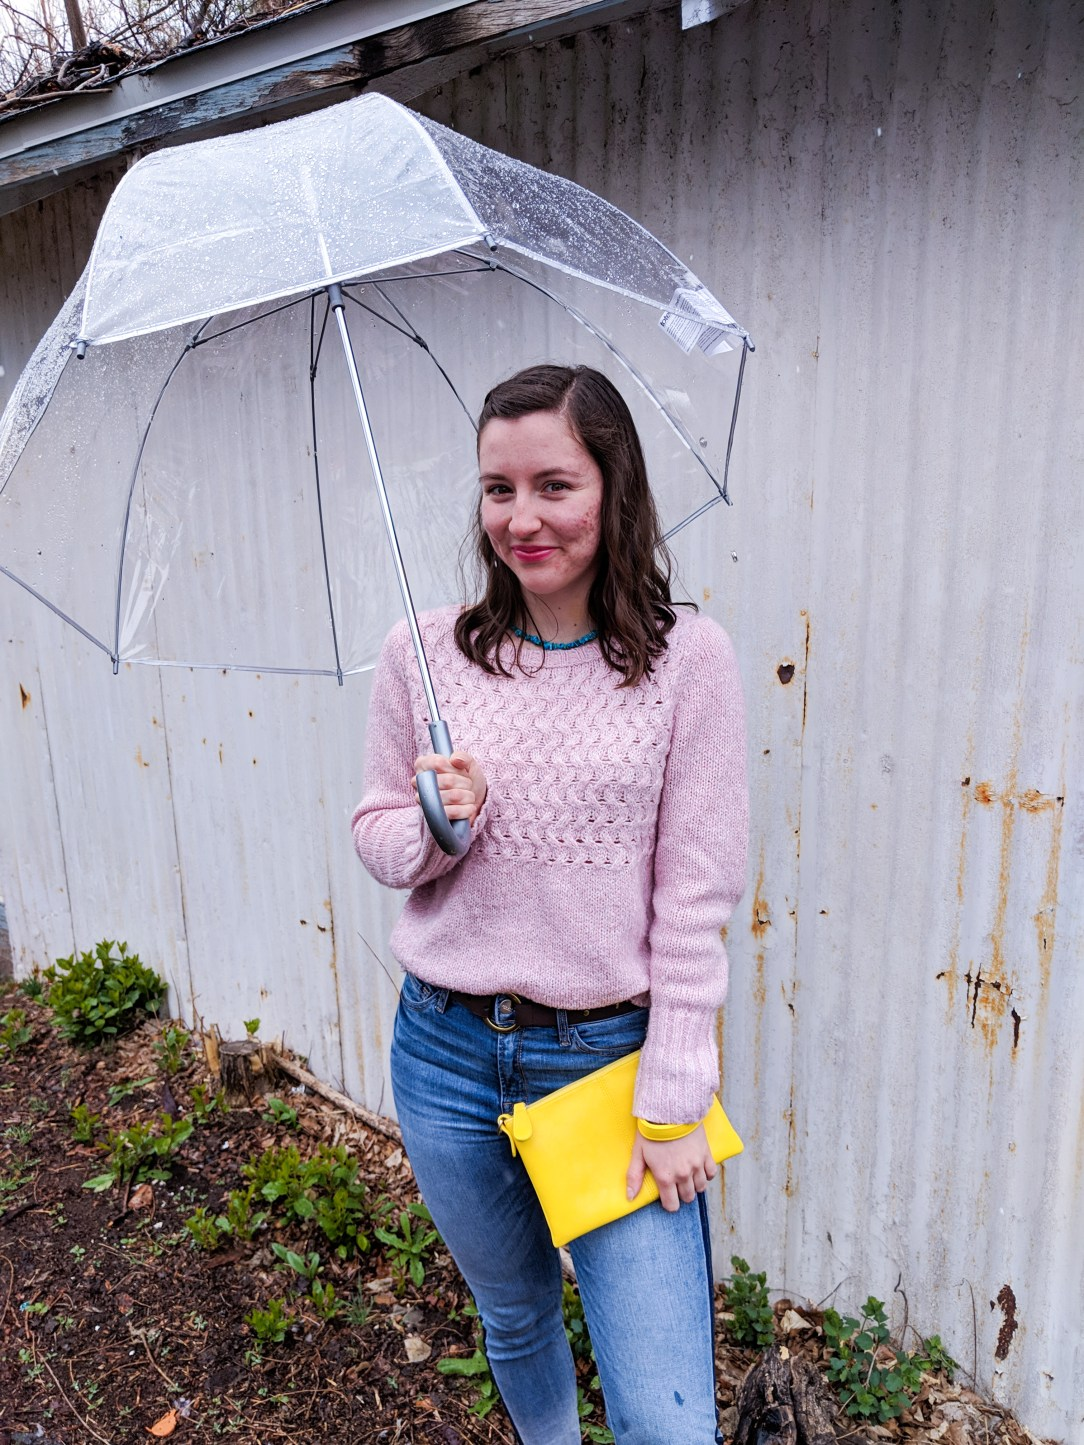 dancing in the rain, rainy day, clear umbrella, pops of color, yellow purse